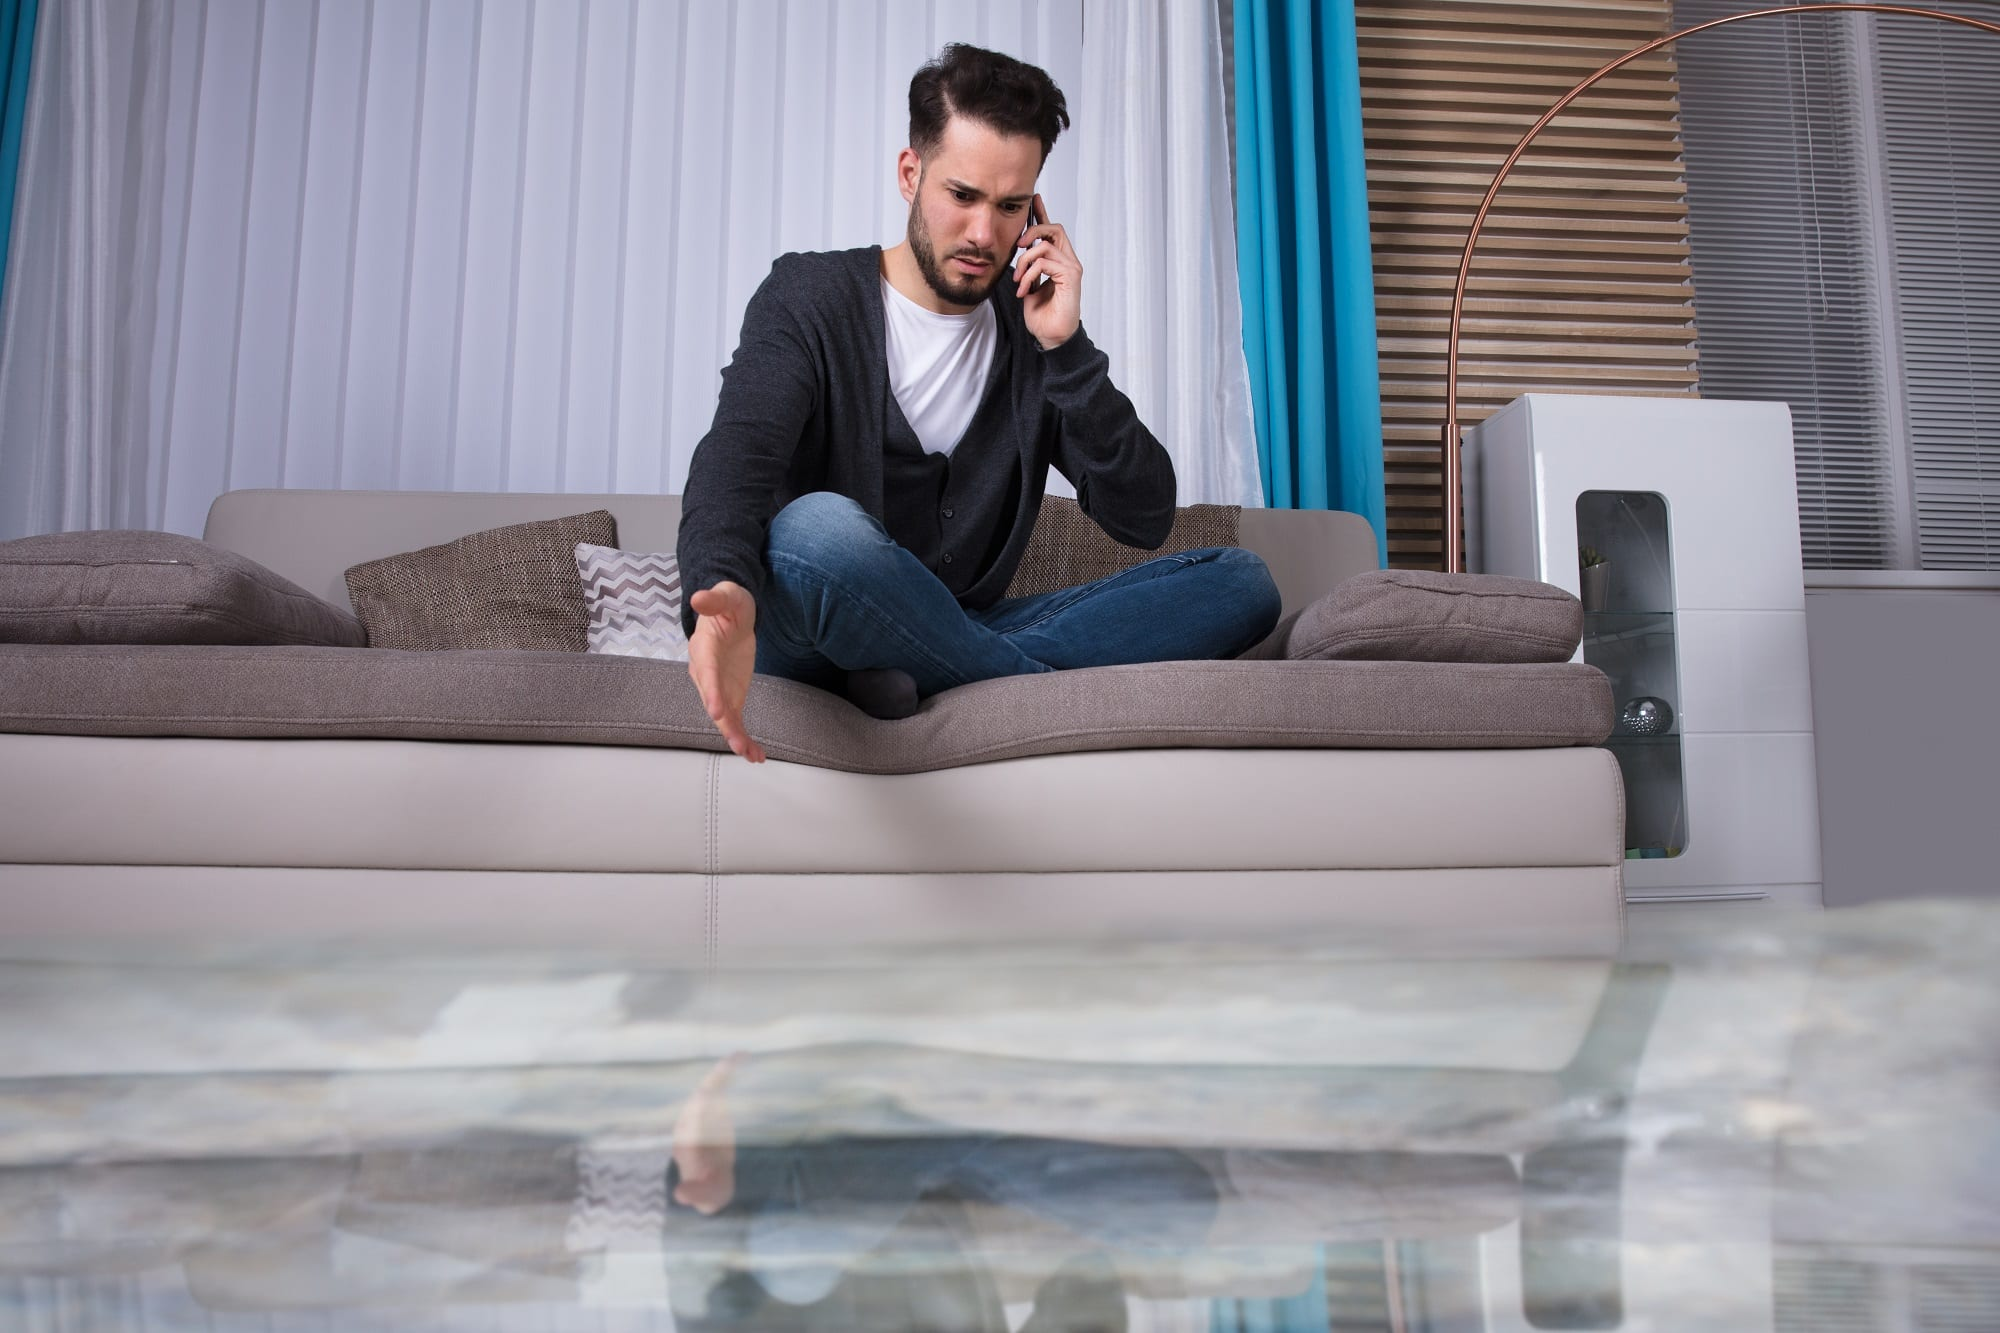 Man Sitting On Sofa Calling To Plumber